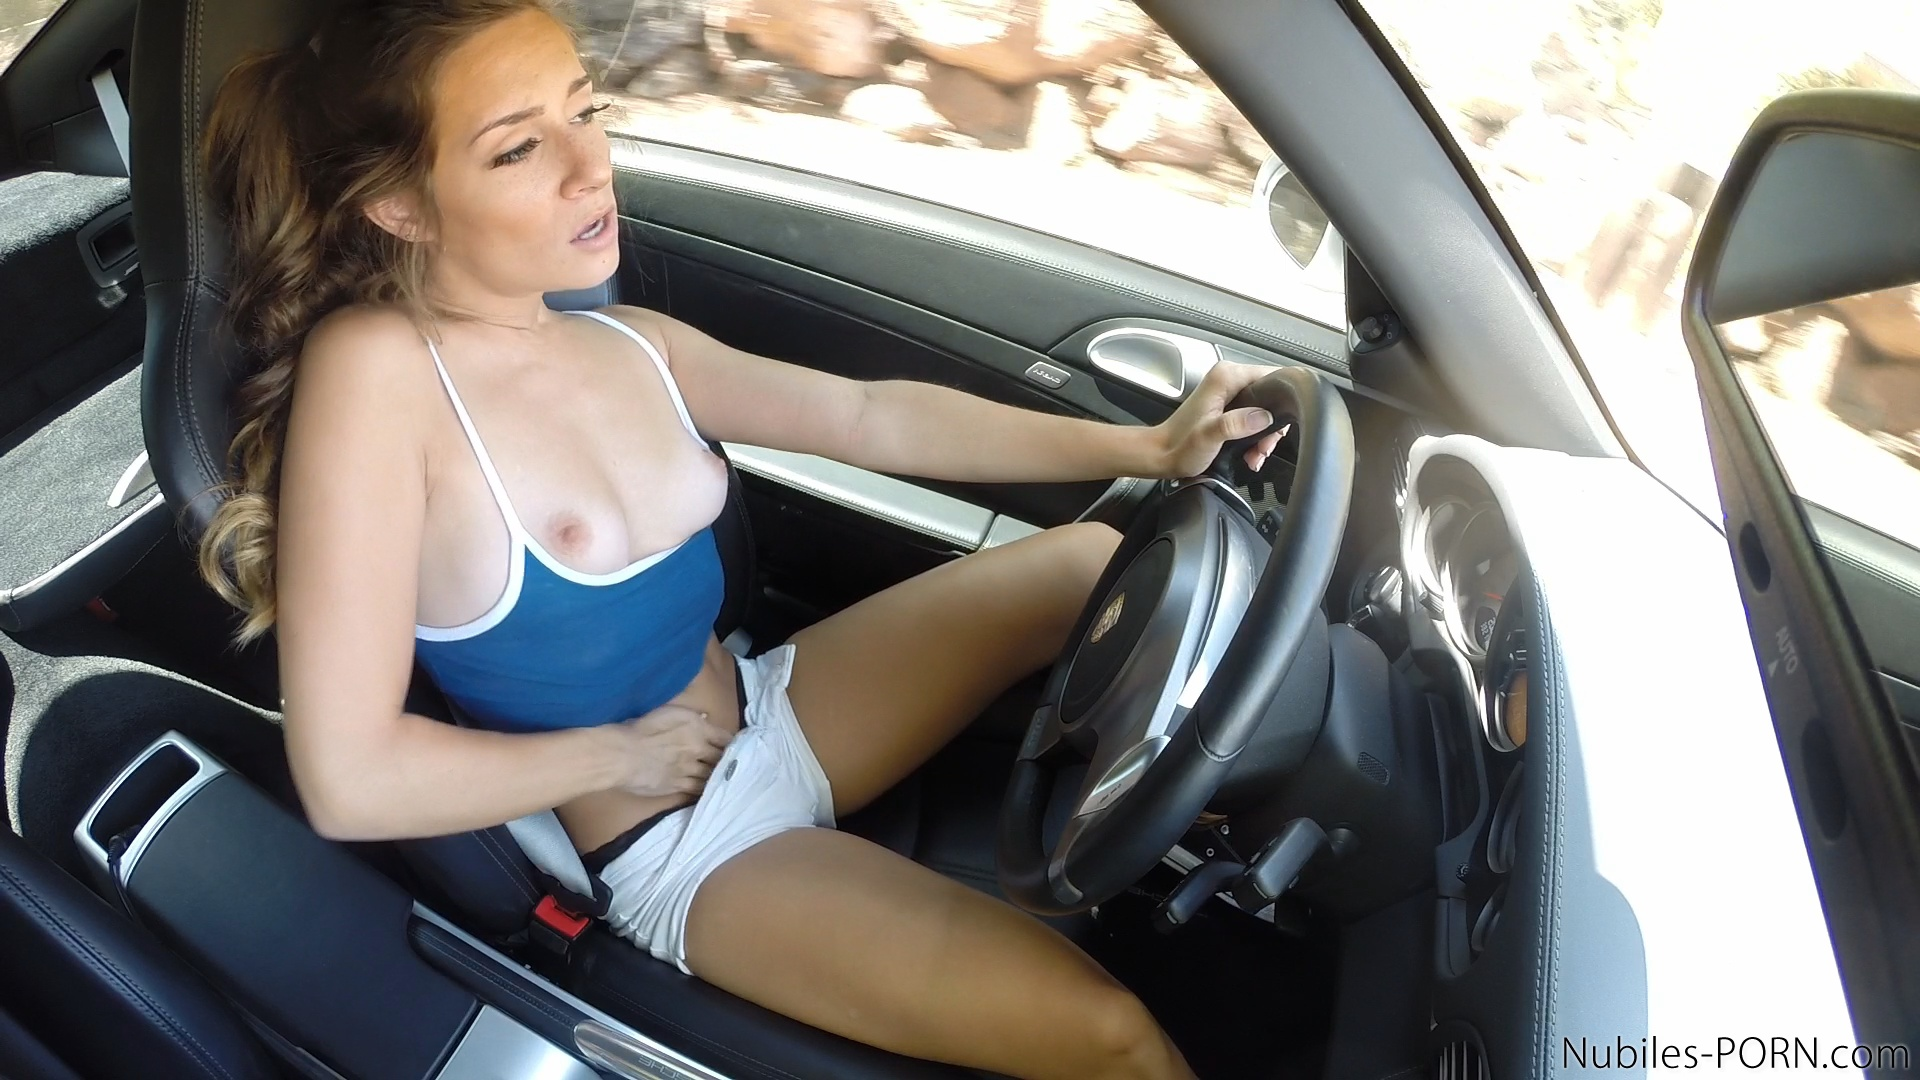 Mom Gives Son Blowjob Car